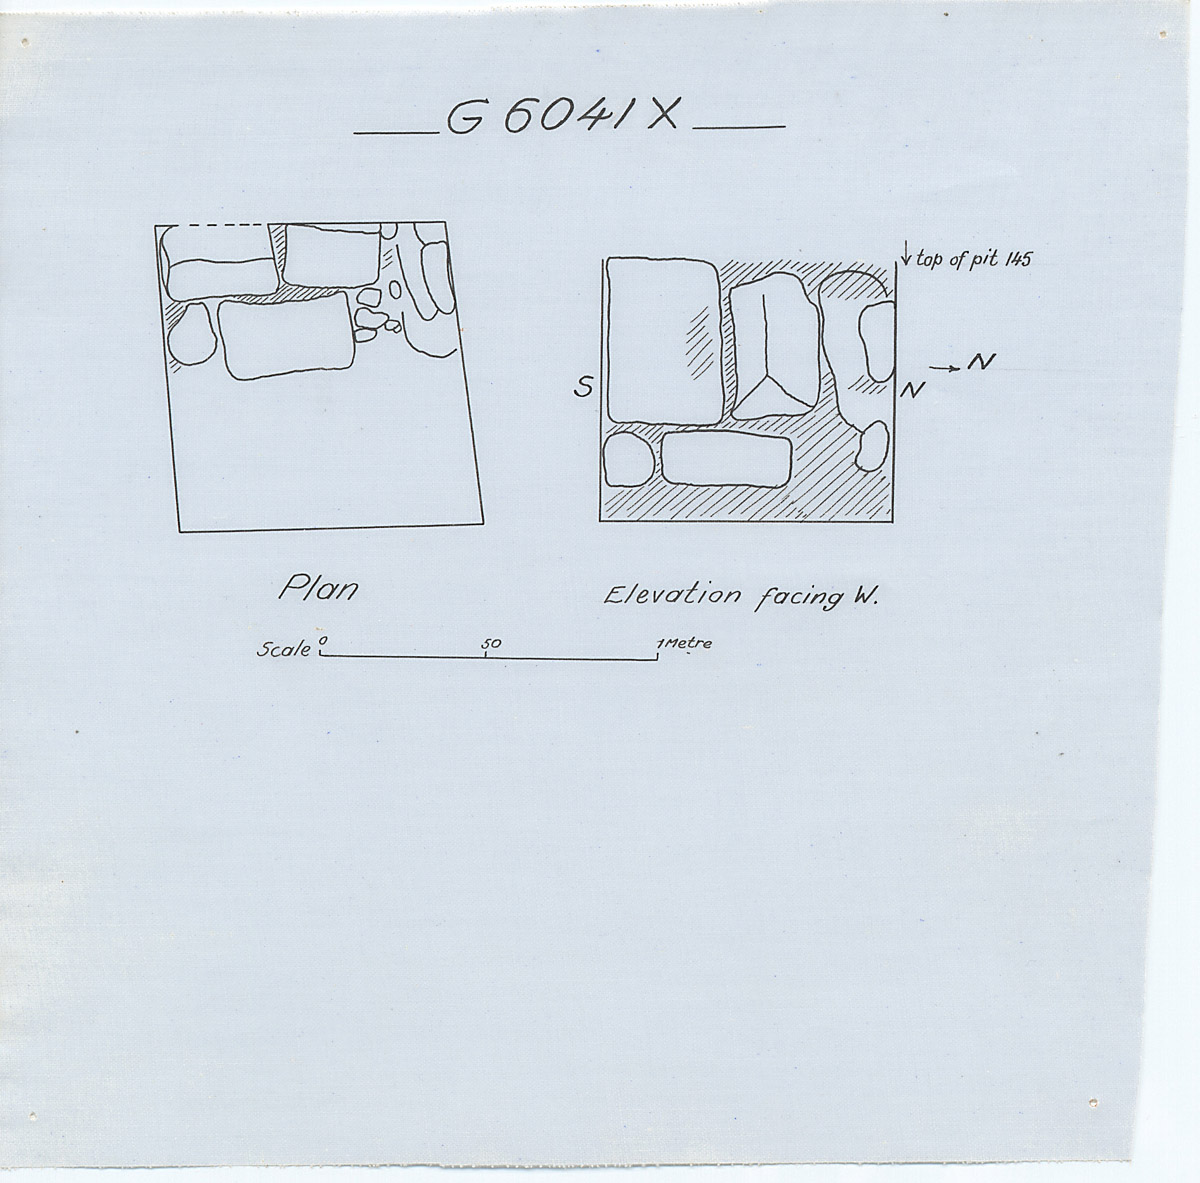 Maps and plans: G 6041, Shaft X